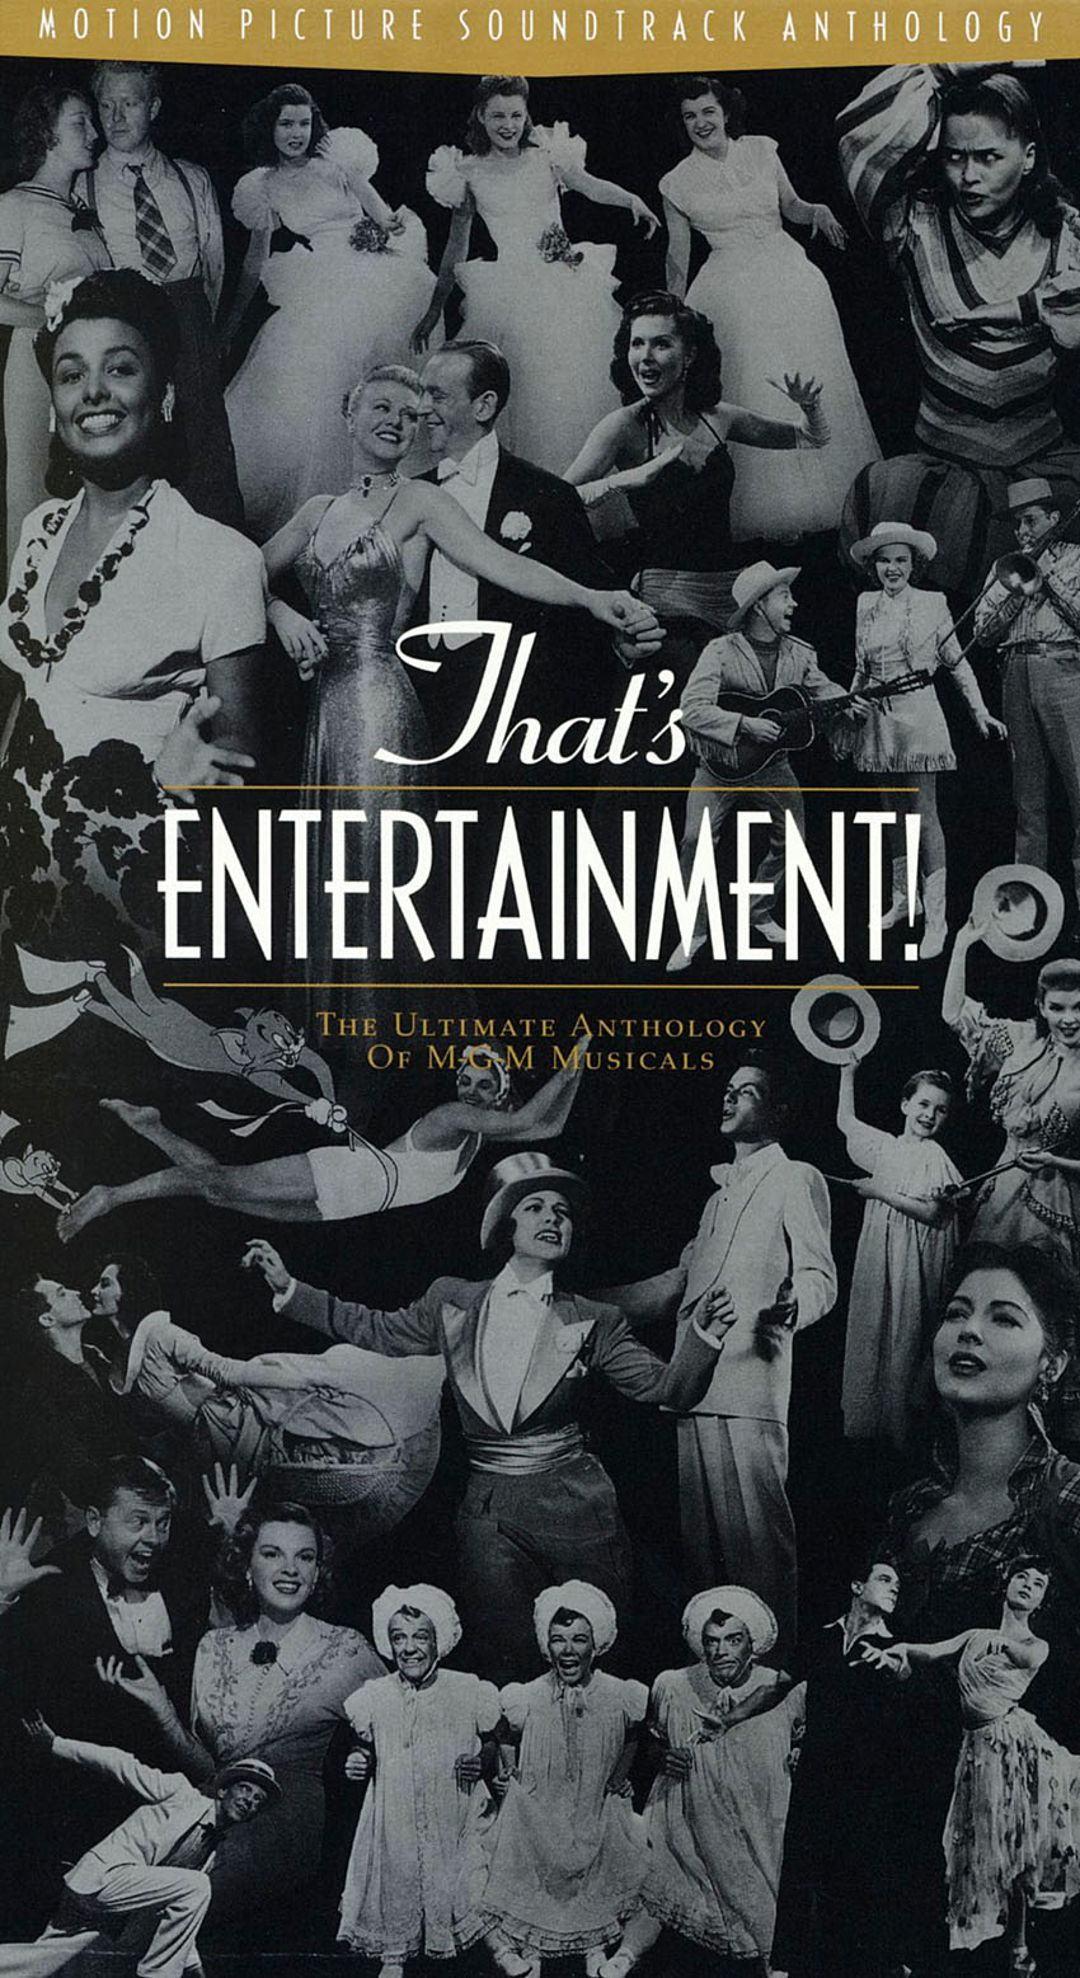 That S Rough Buddy Juliajm15 Some People Have Asked Me: That's Entertainment! The Ultimate Anthology Of M-G-M